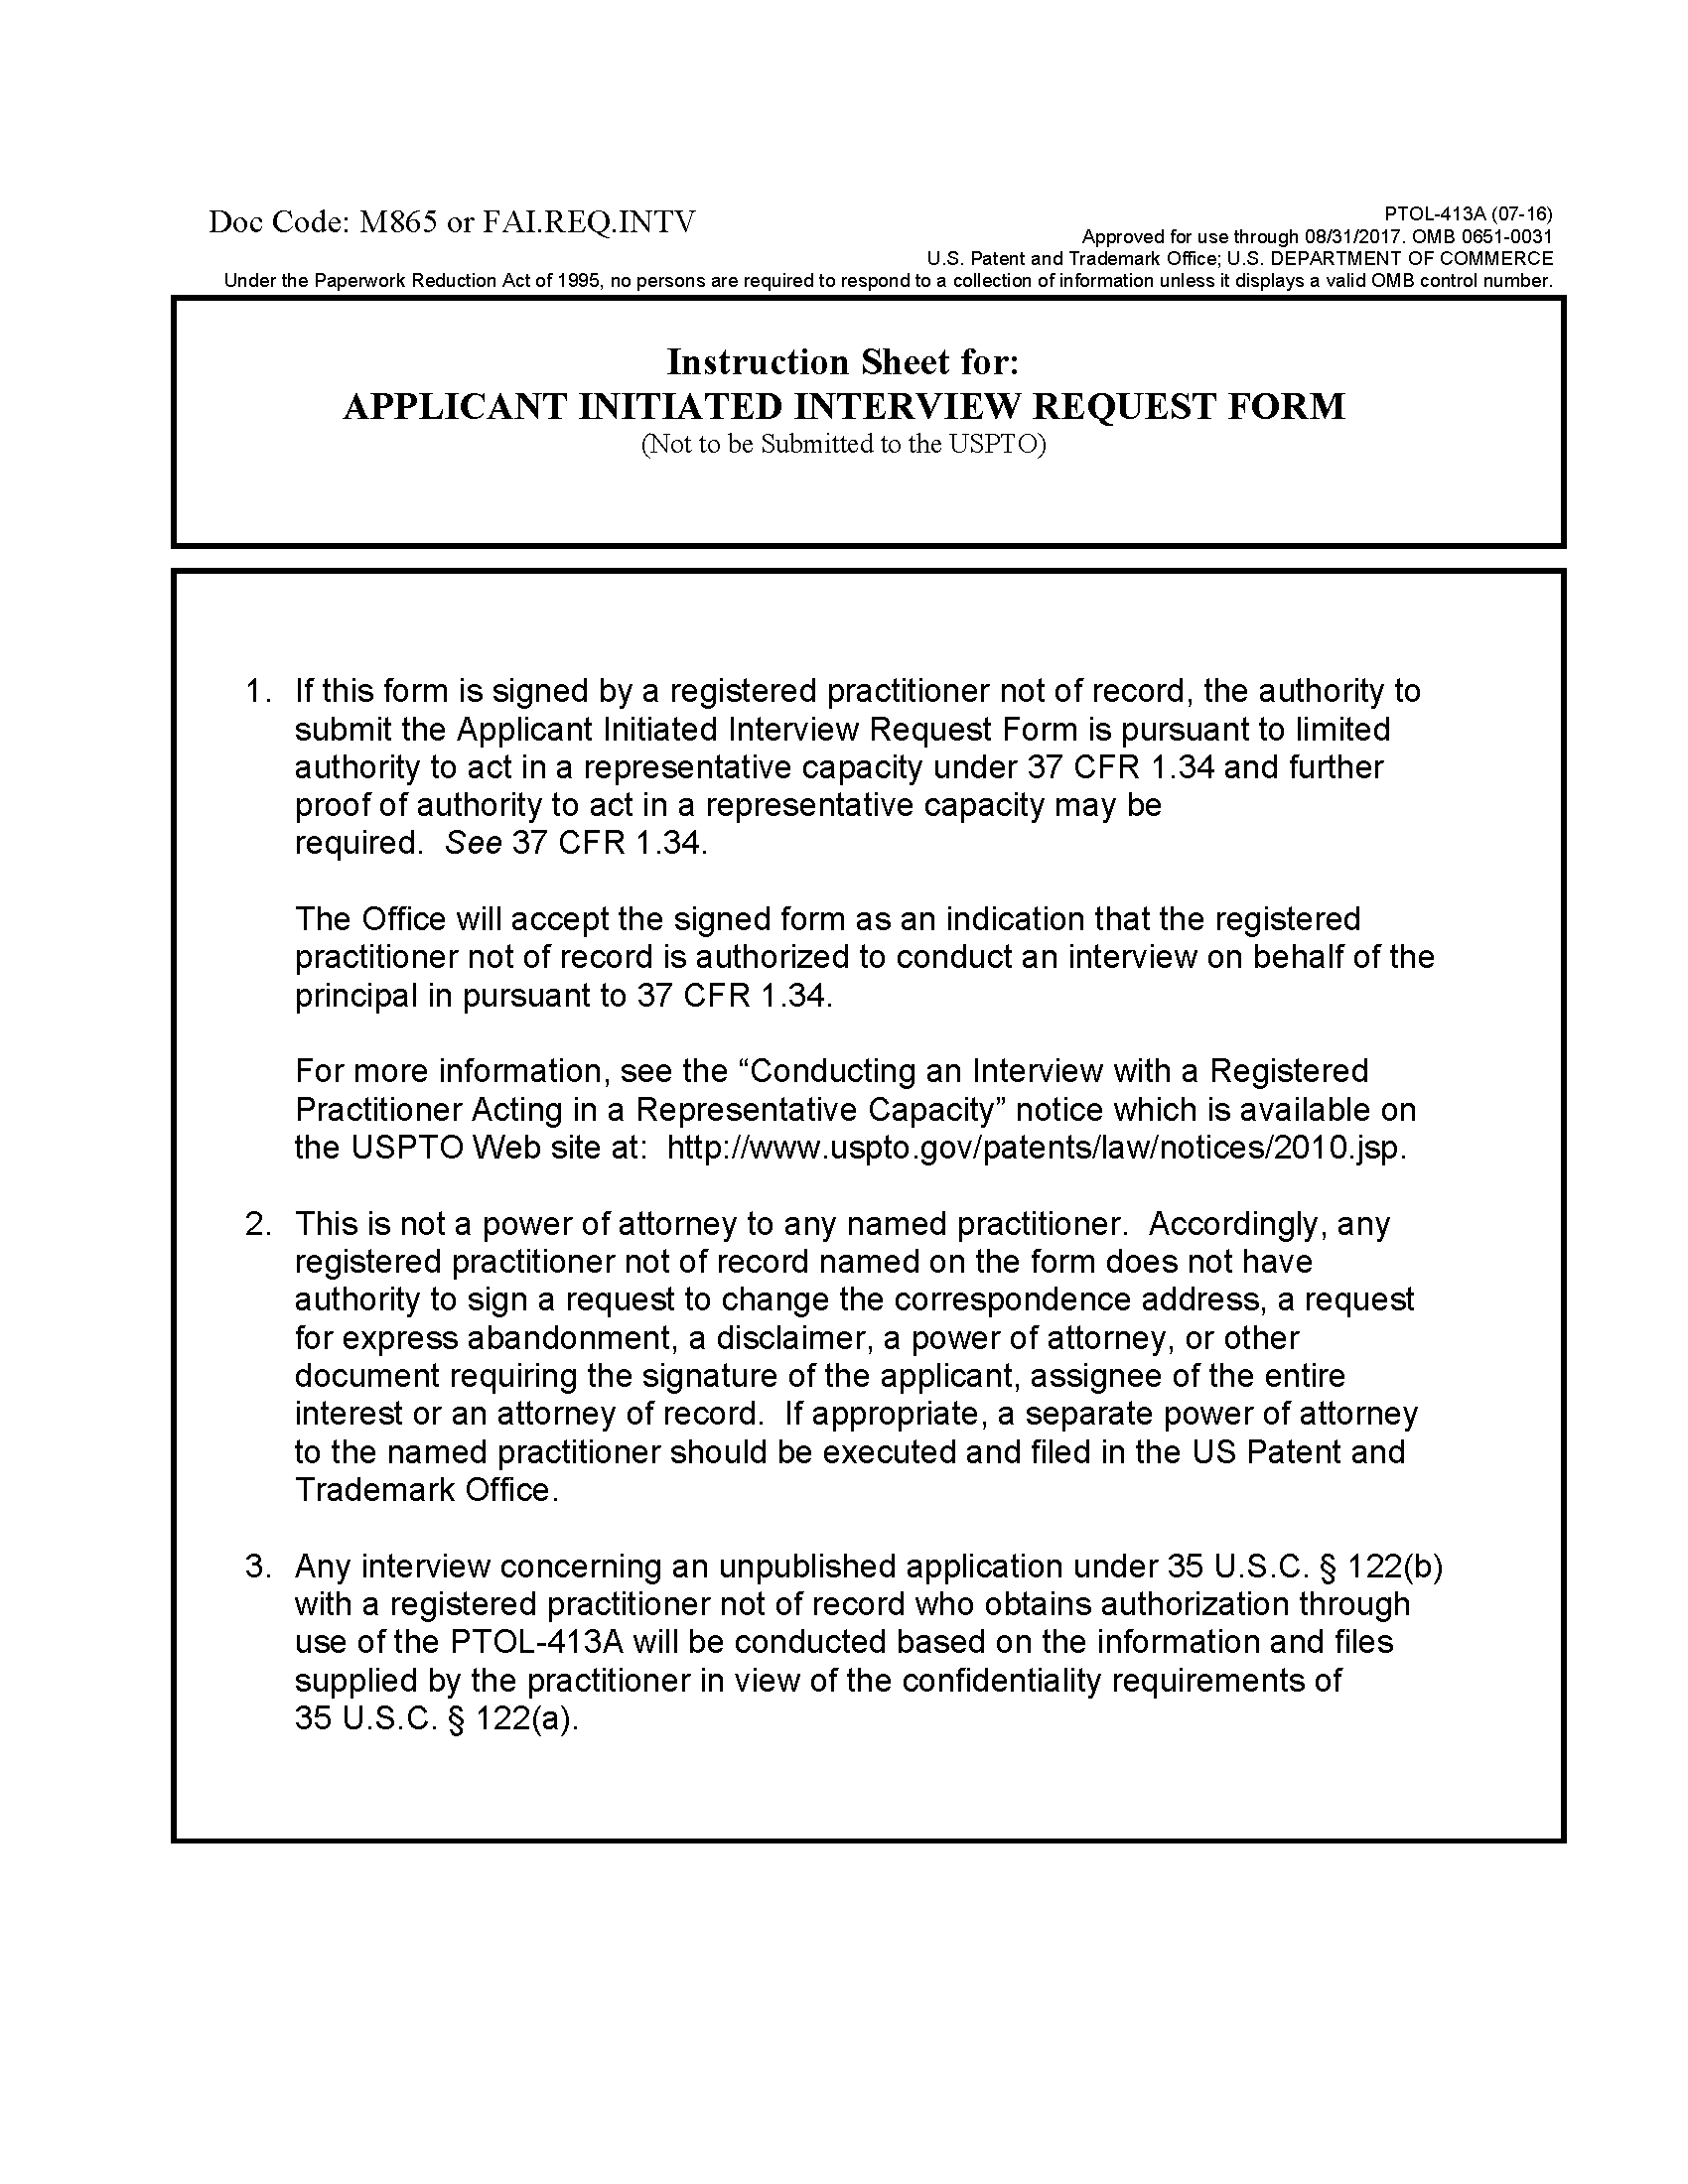 interviews form ptol 413a instruction sheet for applicant initiated interview request form